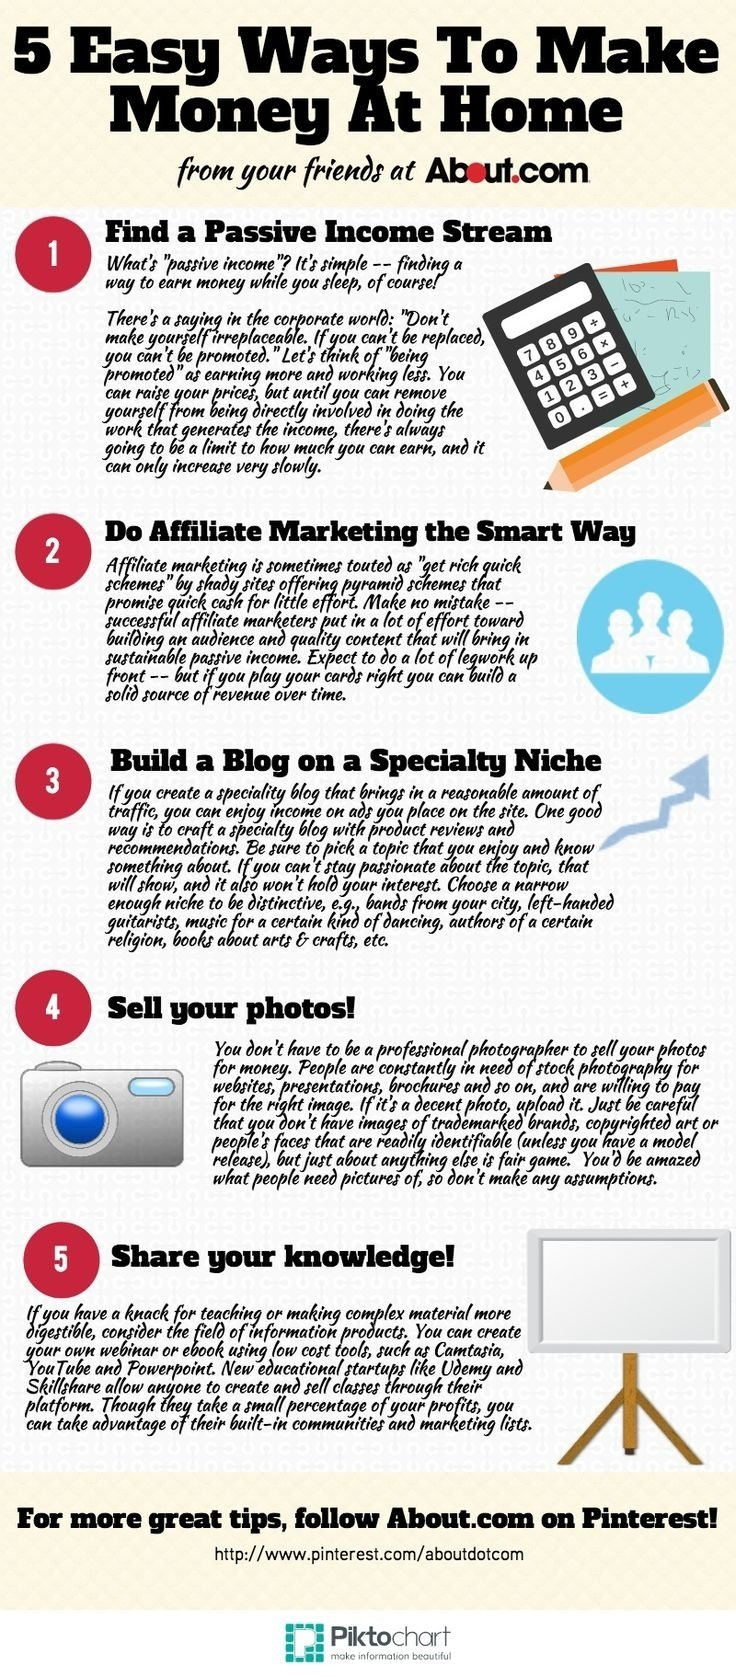 10 Perfect Ideas To Make Money Fast 20 best real easy ways to make money on internet images on pinterest 1